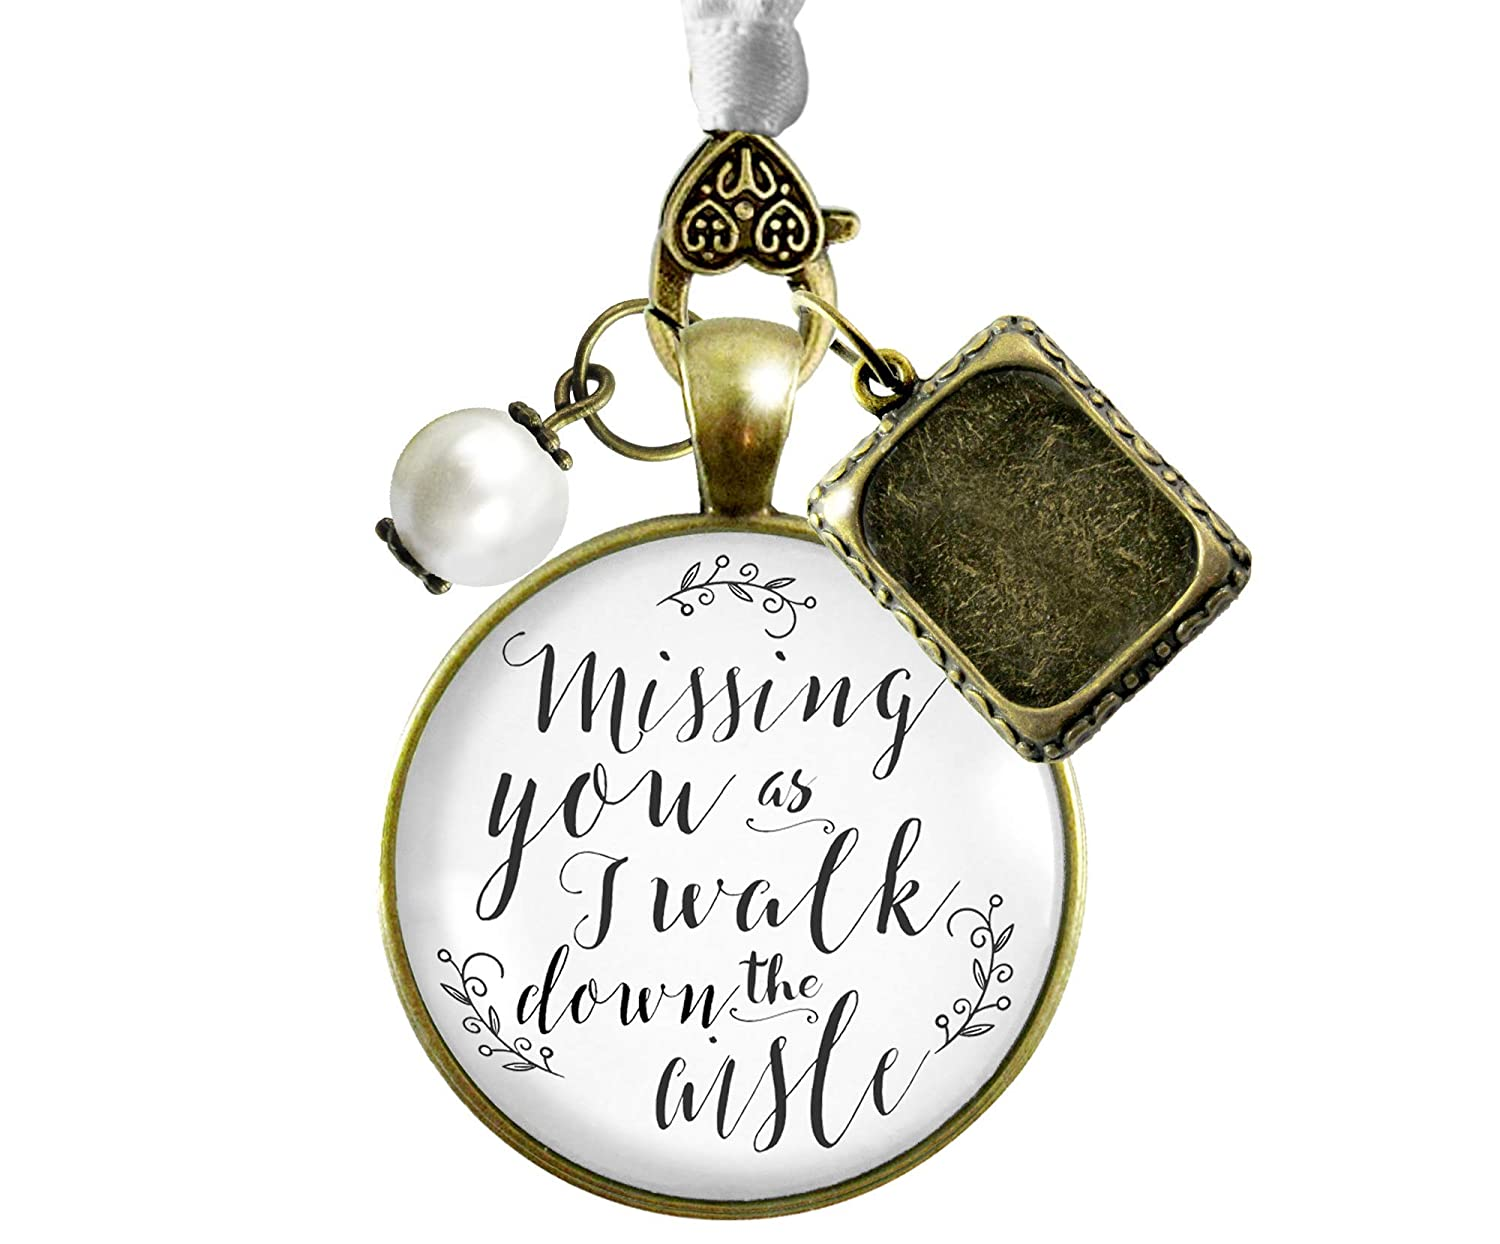 Bouquet Wedding Charm Missing You As I Walk Memorial White Bridal Photo Jewelry